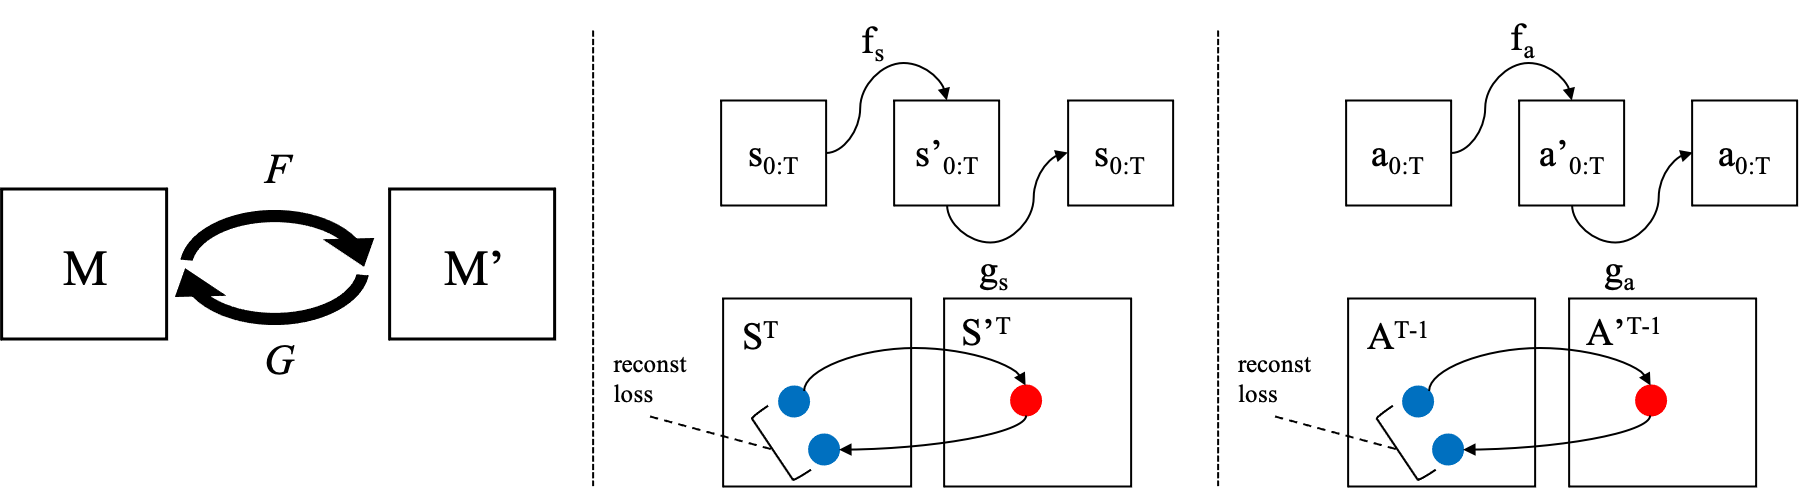 During pre-training, V2S learns an embedding space which encodes events occurring in an abstract MDP in which the human demonstrator behaves. This is done using video frames and textual commentary which serve as proxies for states and actions. Subsequently, a pair of homomorphisms map the robotic MDP into and out of the abstract MDP. These are learnt using a reconstruction loss.